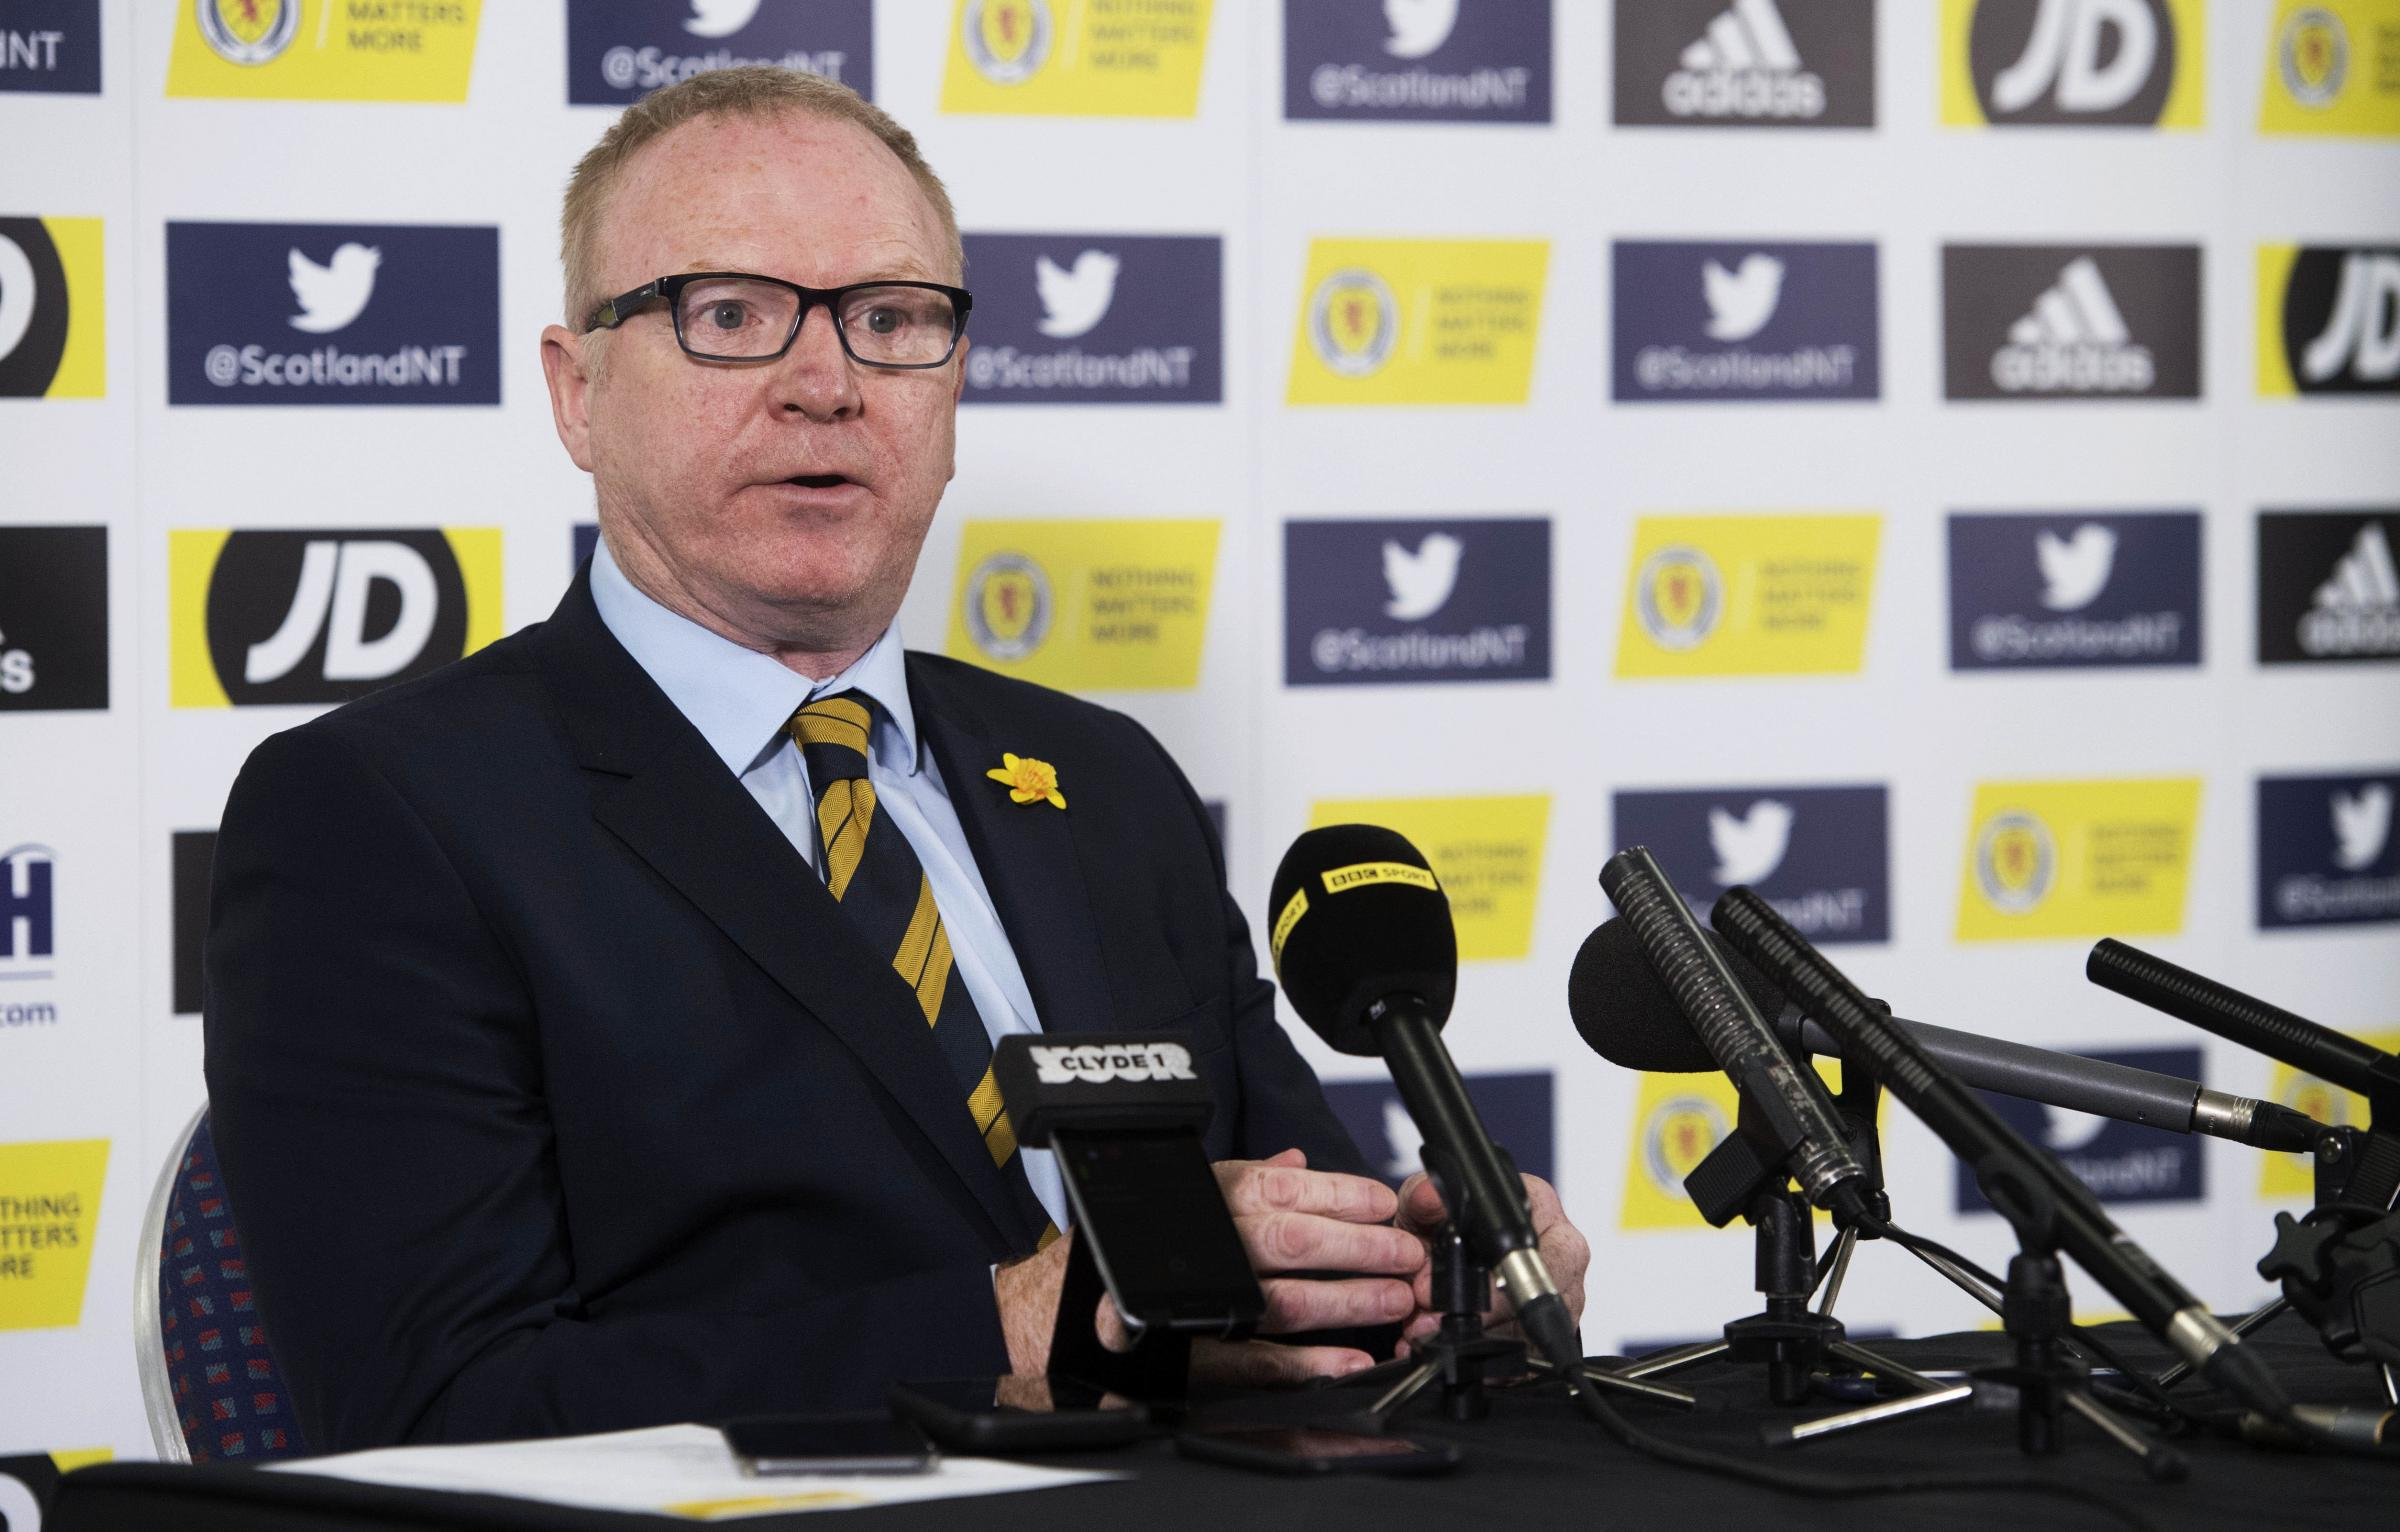 Scotland manager Alex McLeish announces his squad for the forthcoming fixtures against San Marino and Kazakhstan.